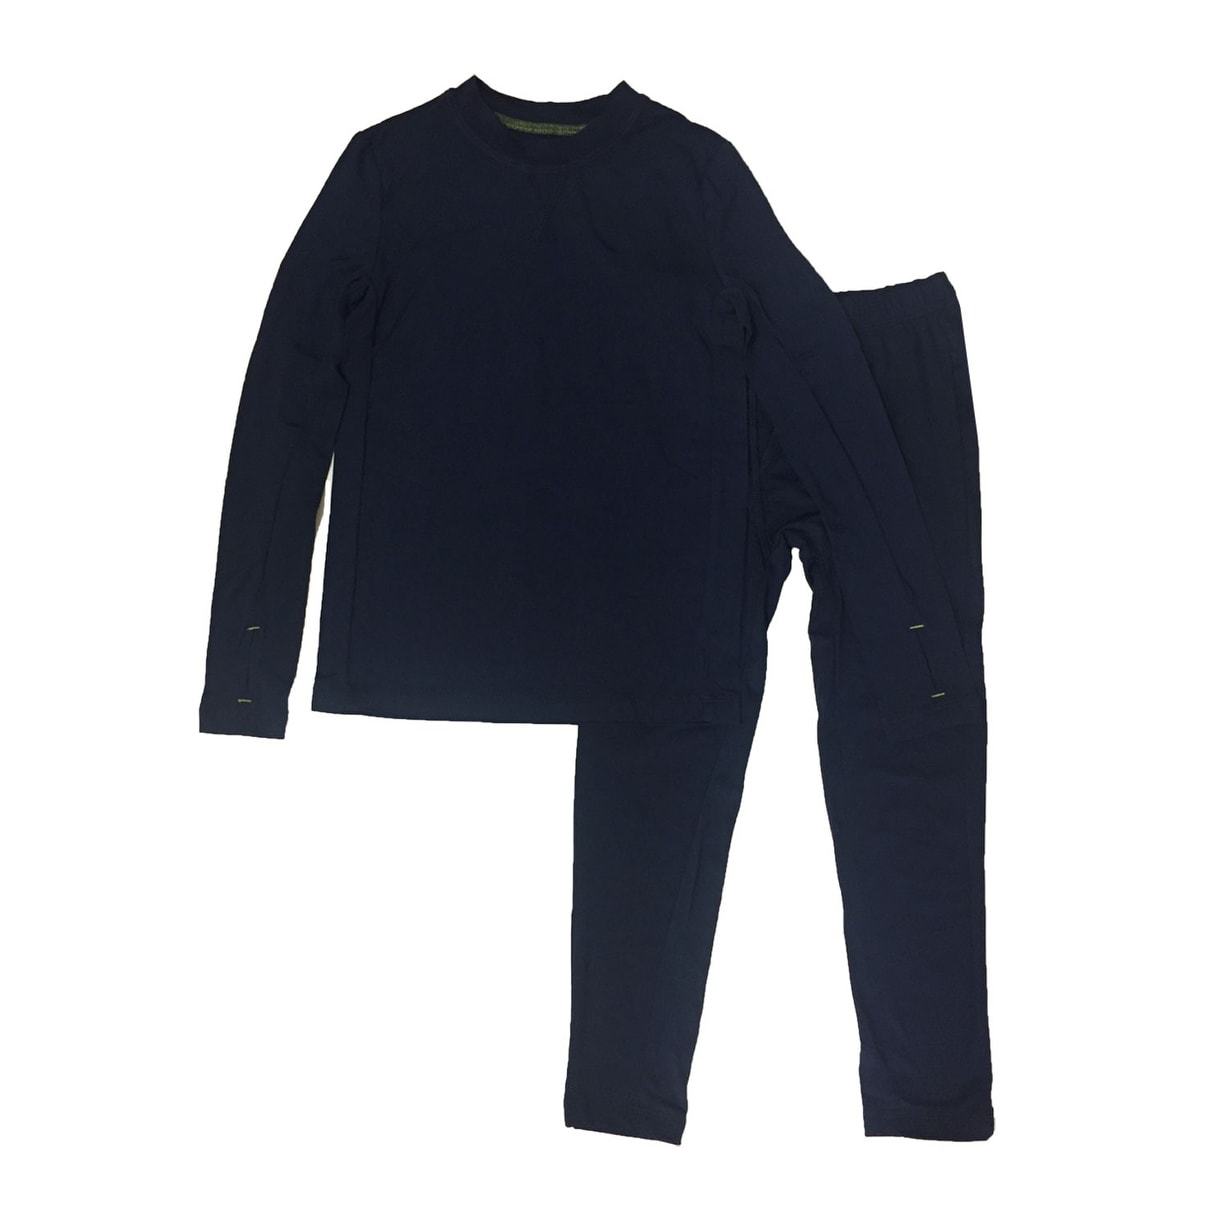 ClimateSmart Boys Warm Baselayer Comfortech Poly 2-Piece Set - Free  Shipping On Orders Over $45 - Overstock.com - 24466697